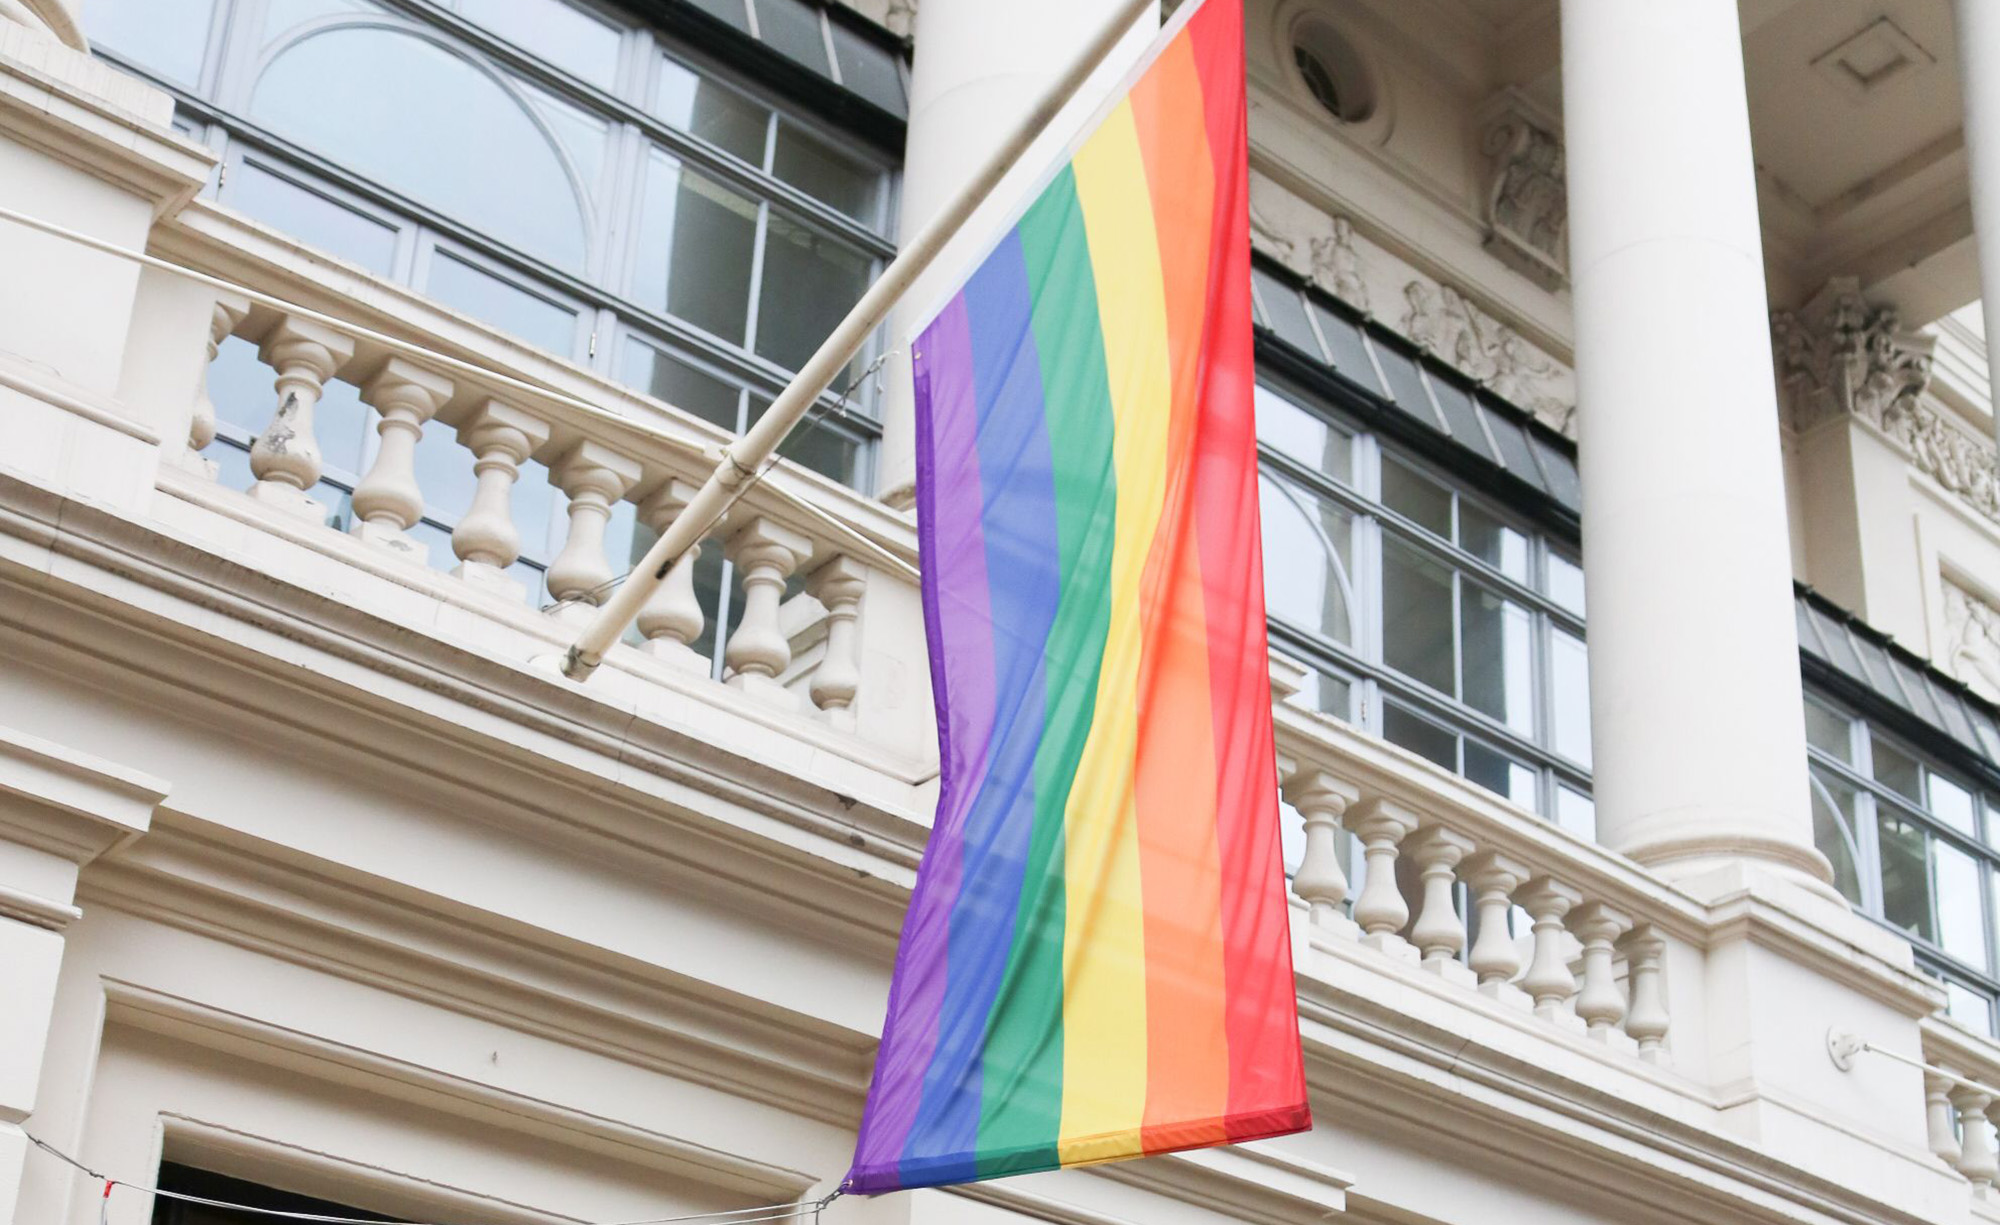 Germany has finally made same sex marriage legal